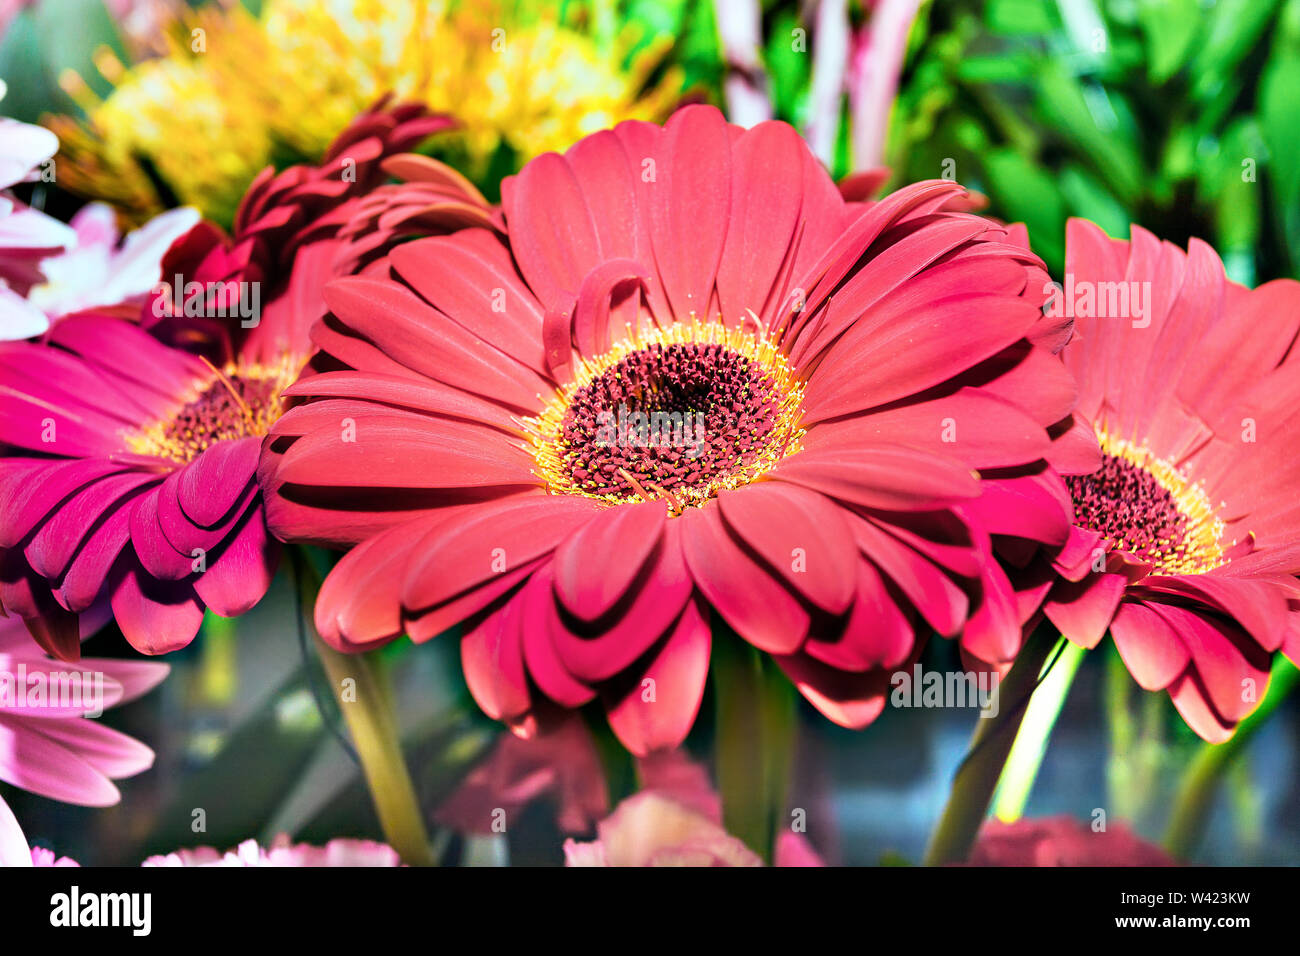 Three beautiful gerberas flowers close up with green blurred background, there is a yellow stigma on the red flowers - Stock Image